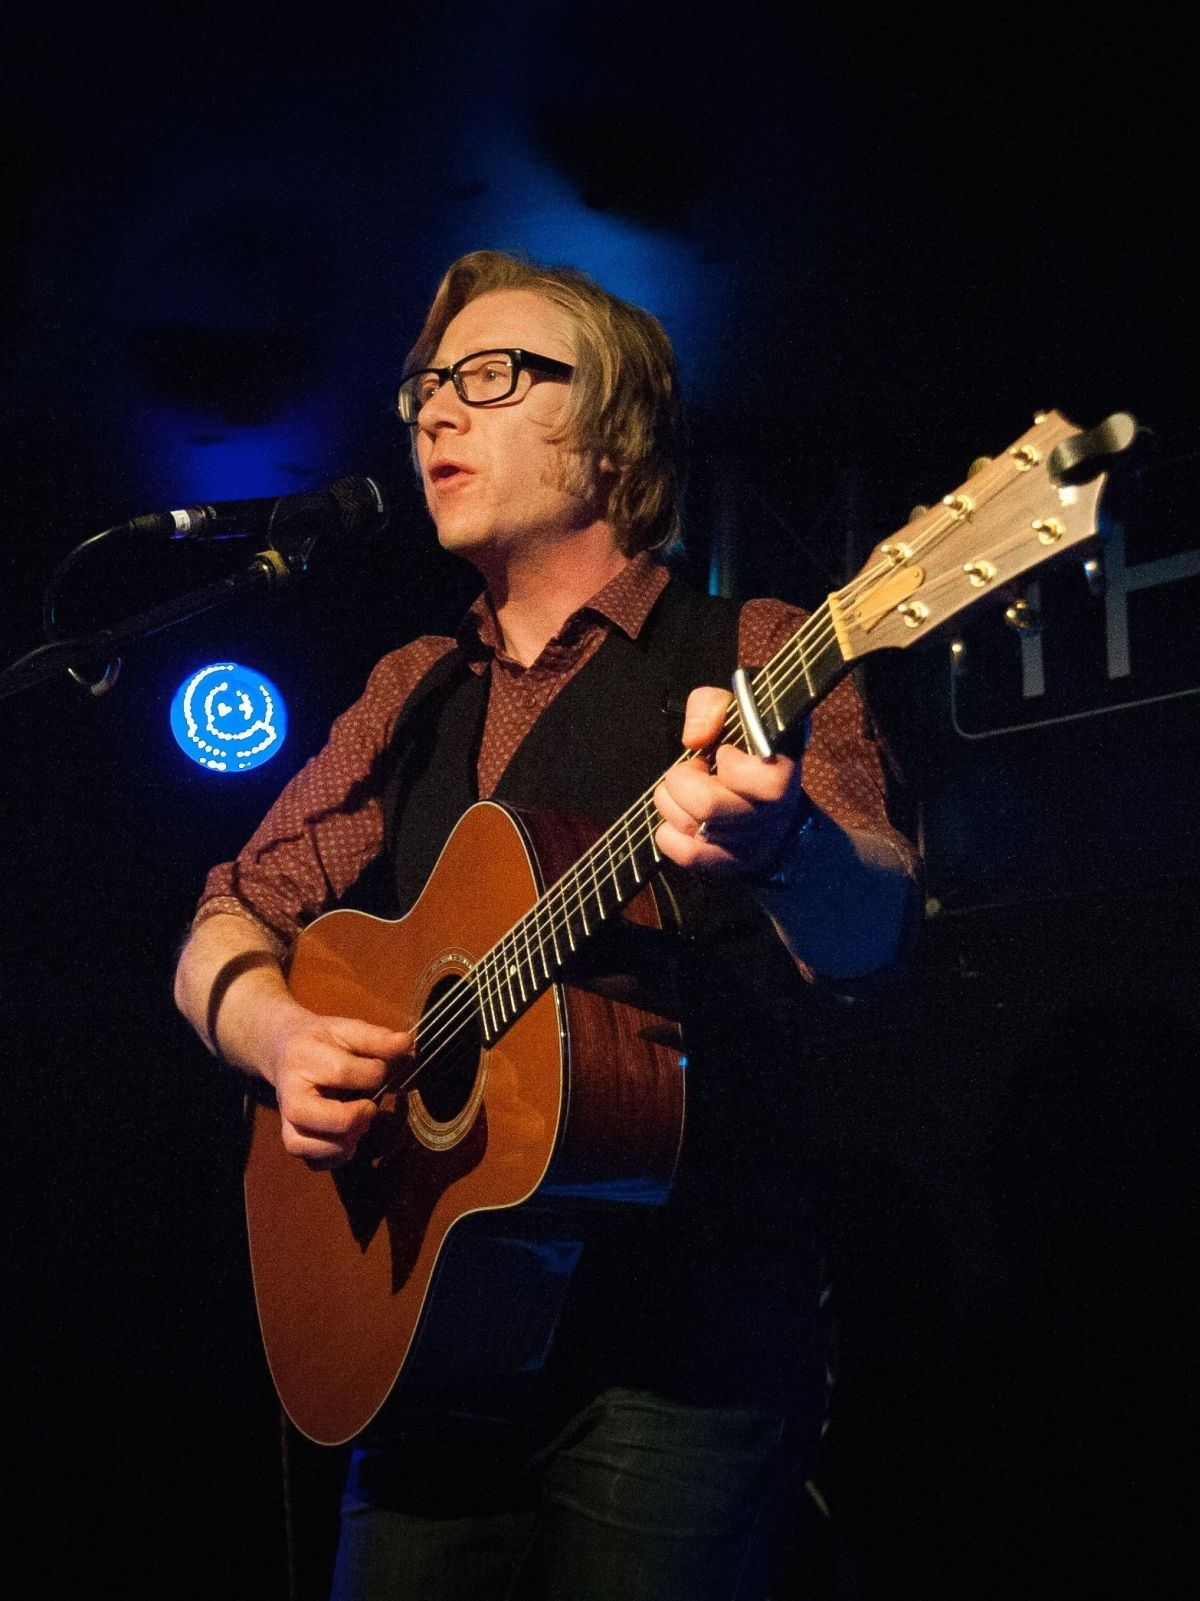 Folk singer songwriter Darren Black, who lives in the village near Winchester, will play at Twyford Village Hall in June